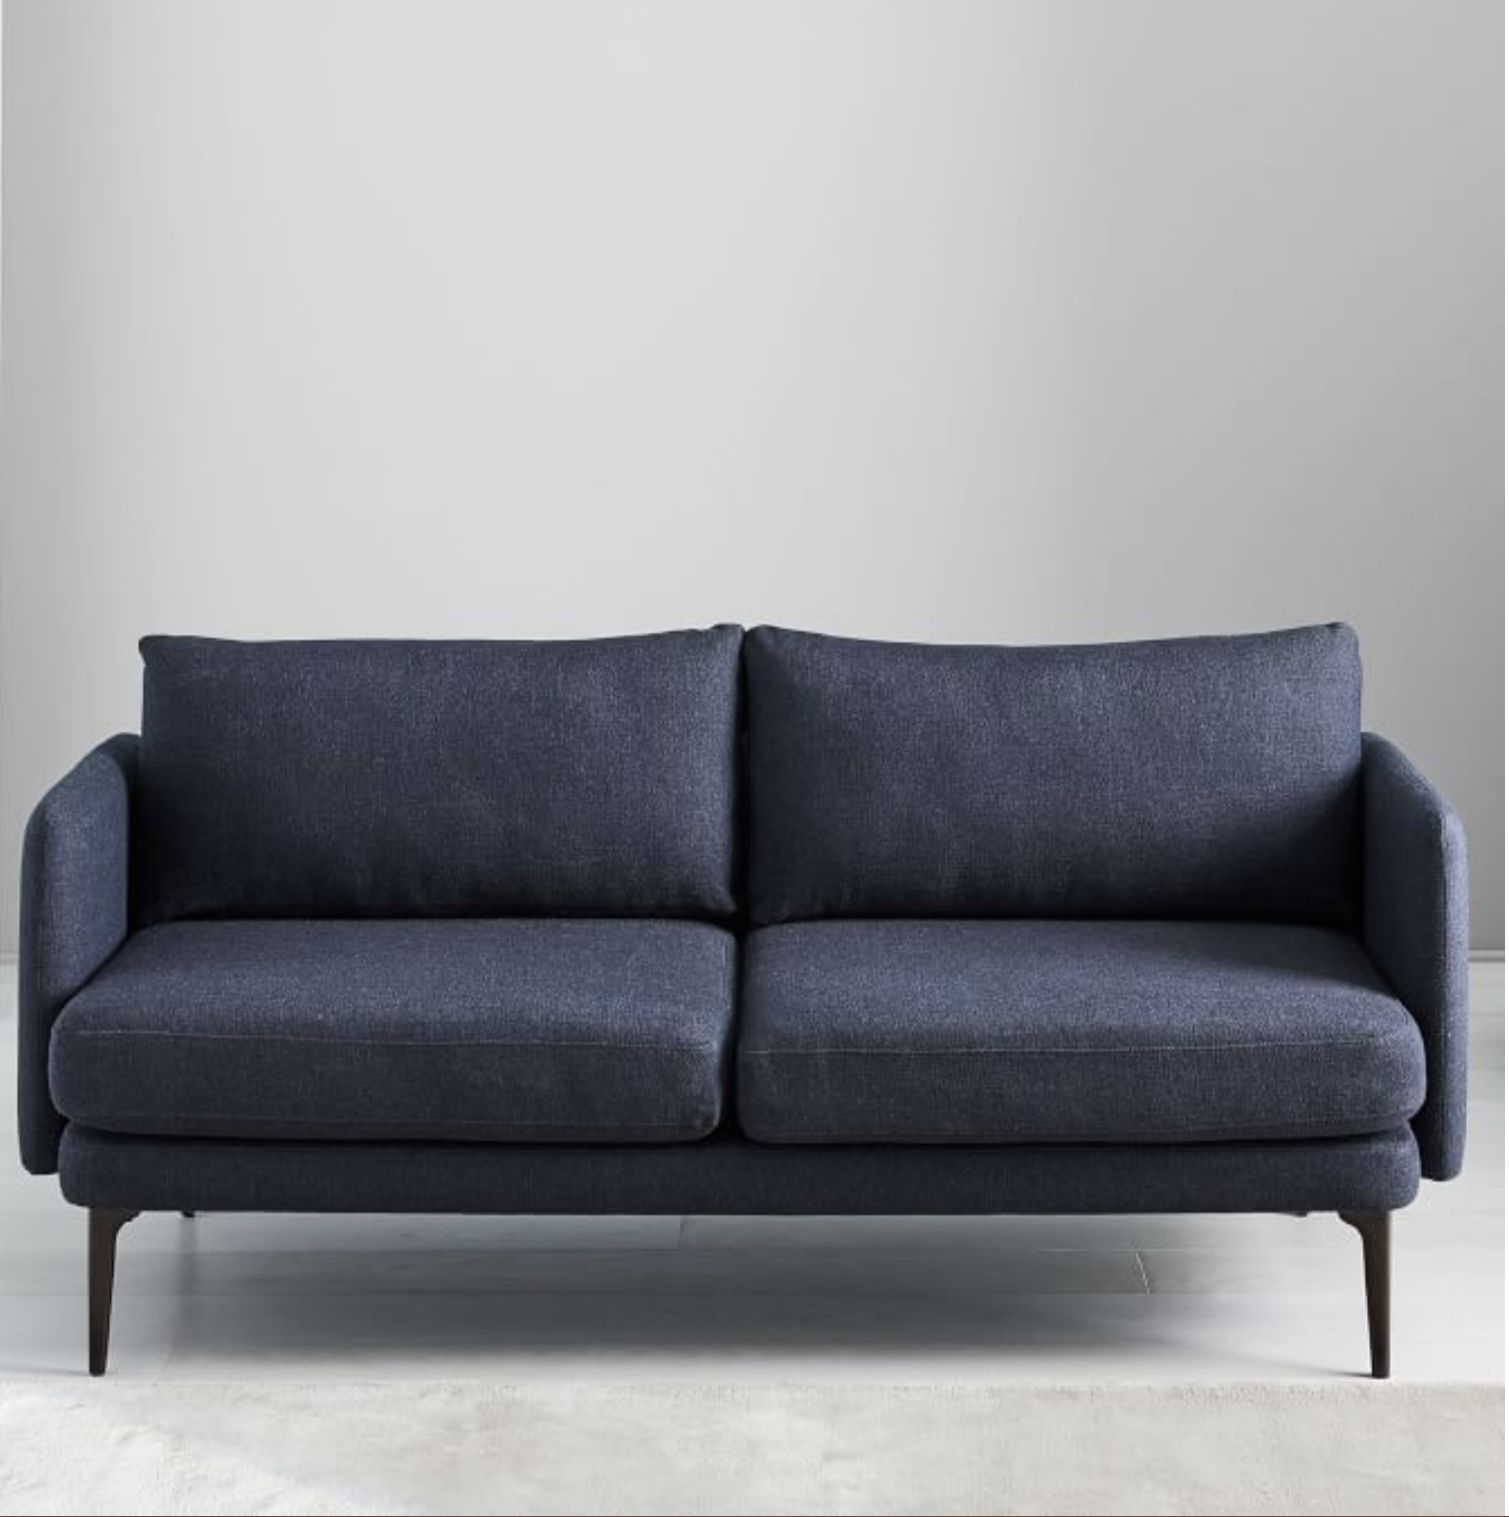 15 Affordable Couches Under 900